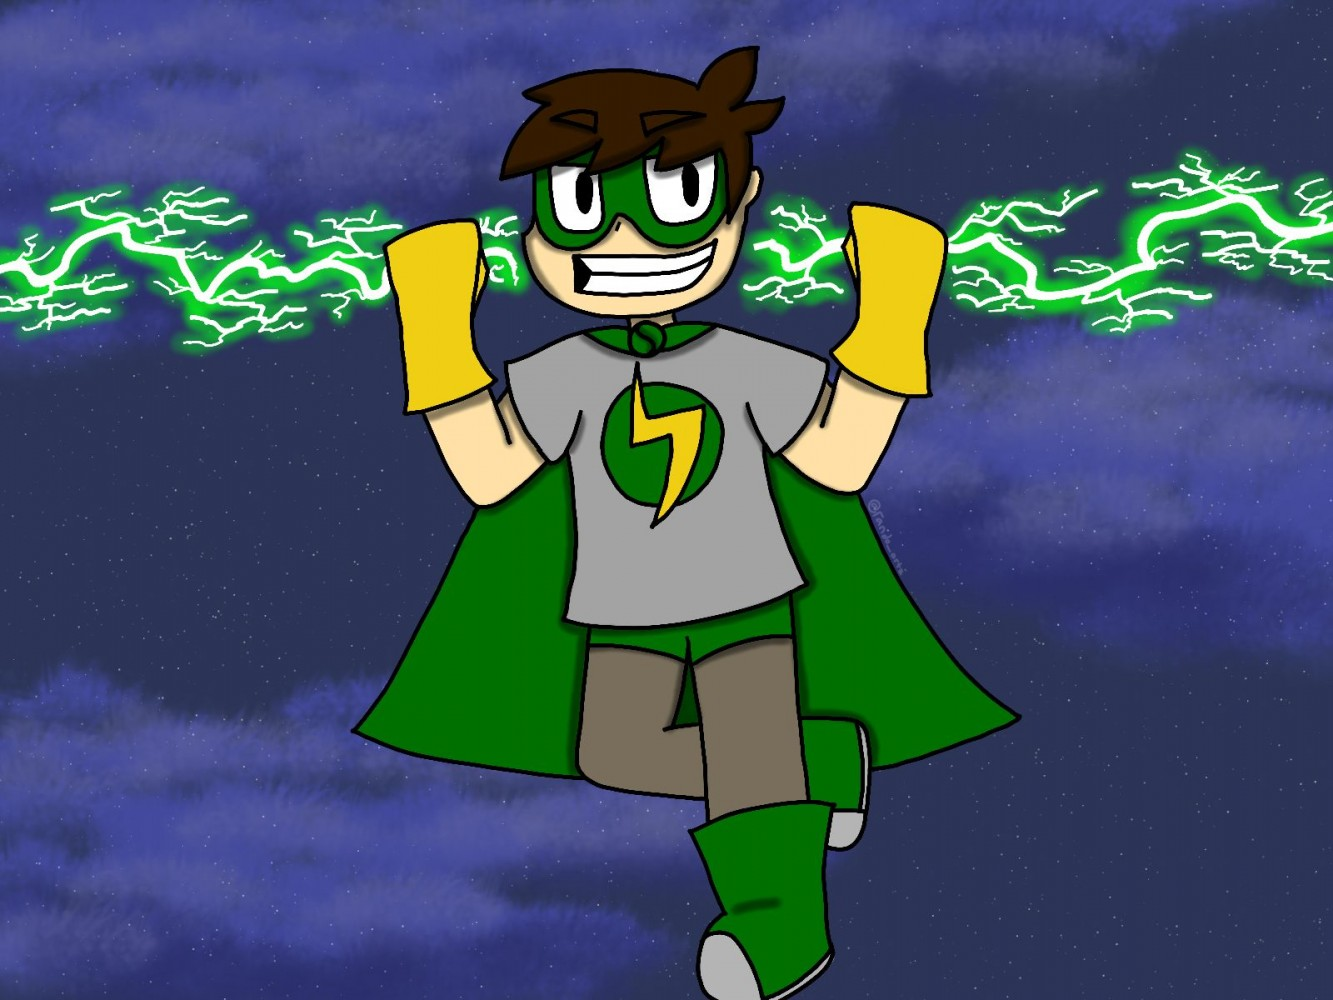 main-image-Edd Gould Day uploaded by Sephy123